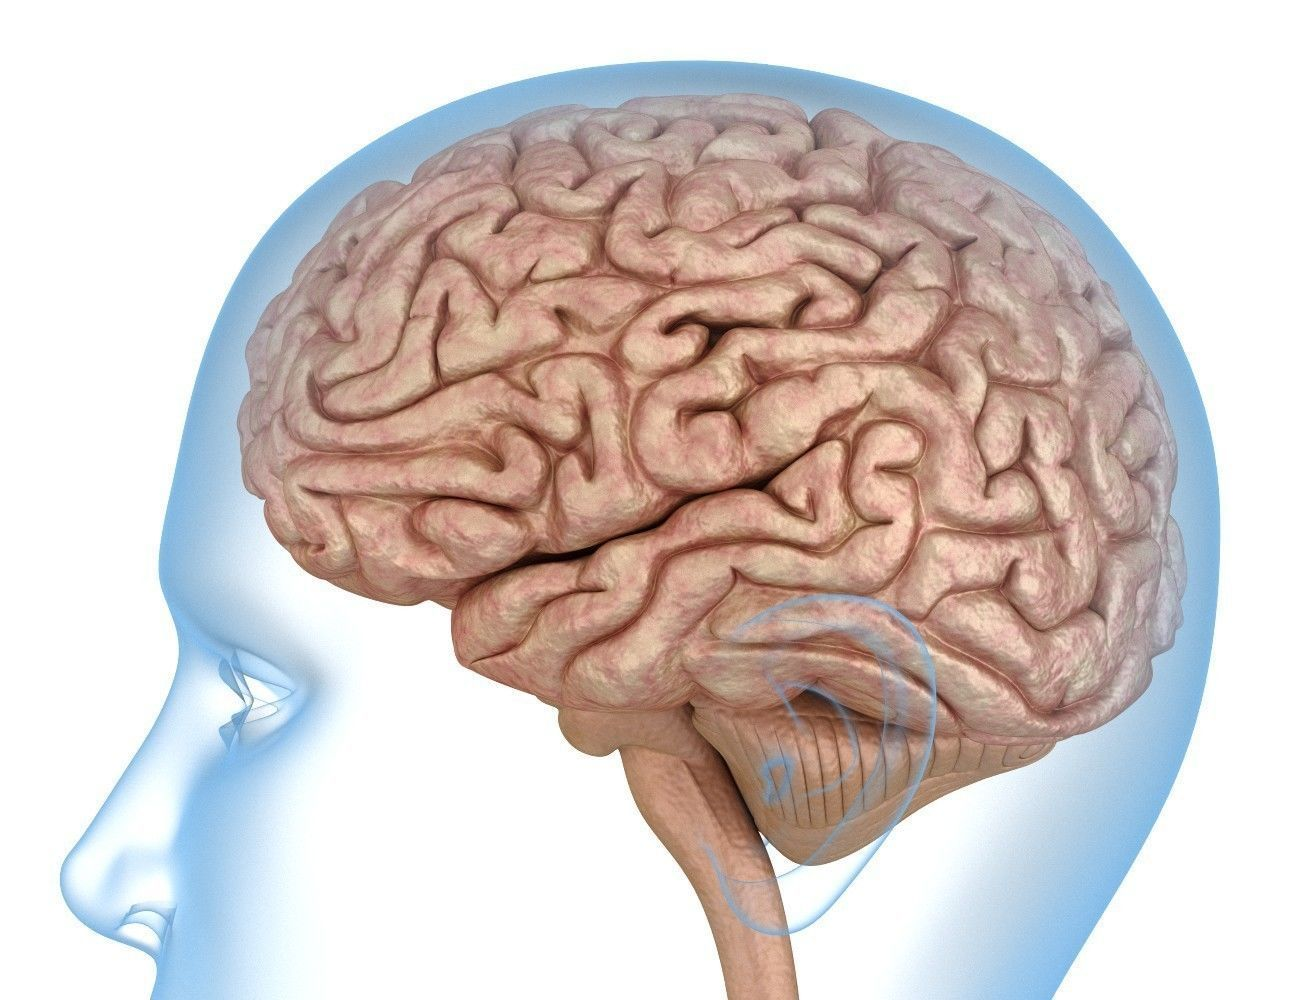 hight resolution of human brain anatomy 3d model 3d model